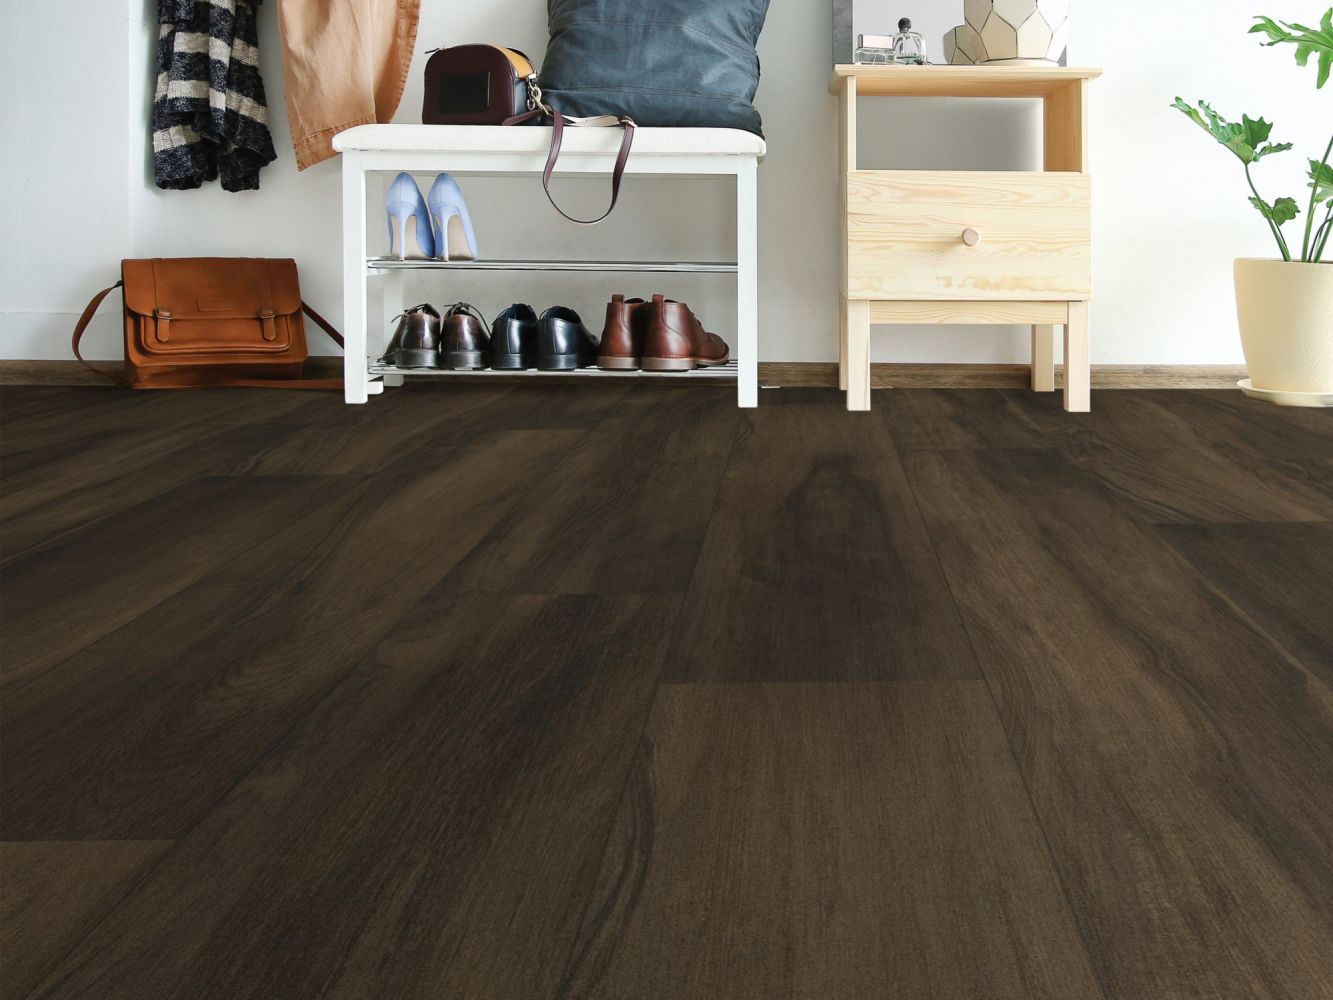 Shaw Floors Resilient Residential Urban Woodlands 65g Algon 00744_VG088